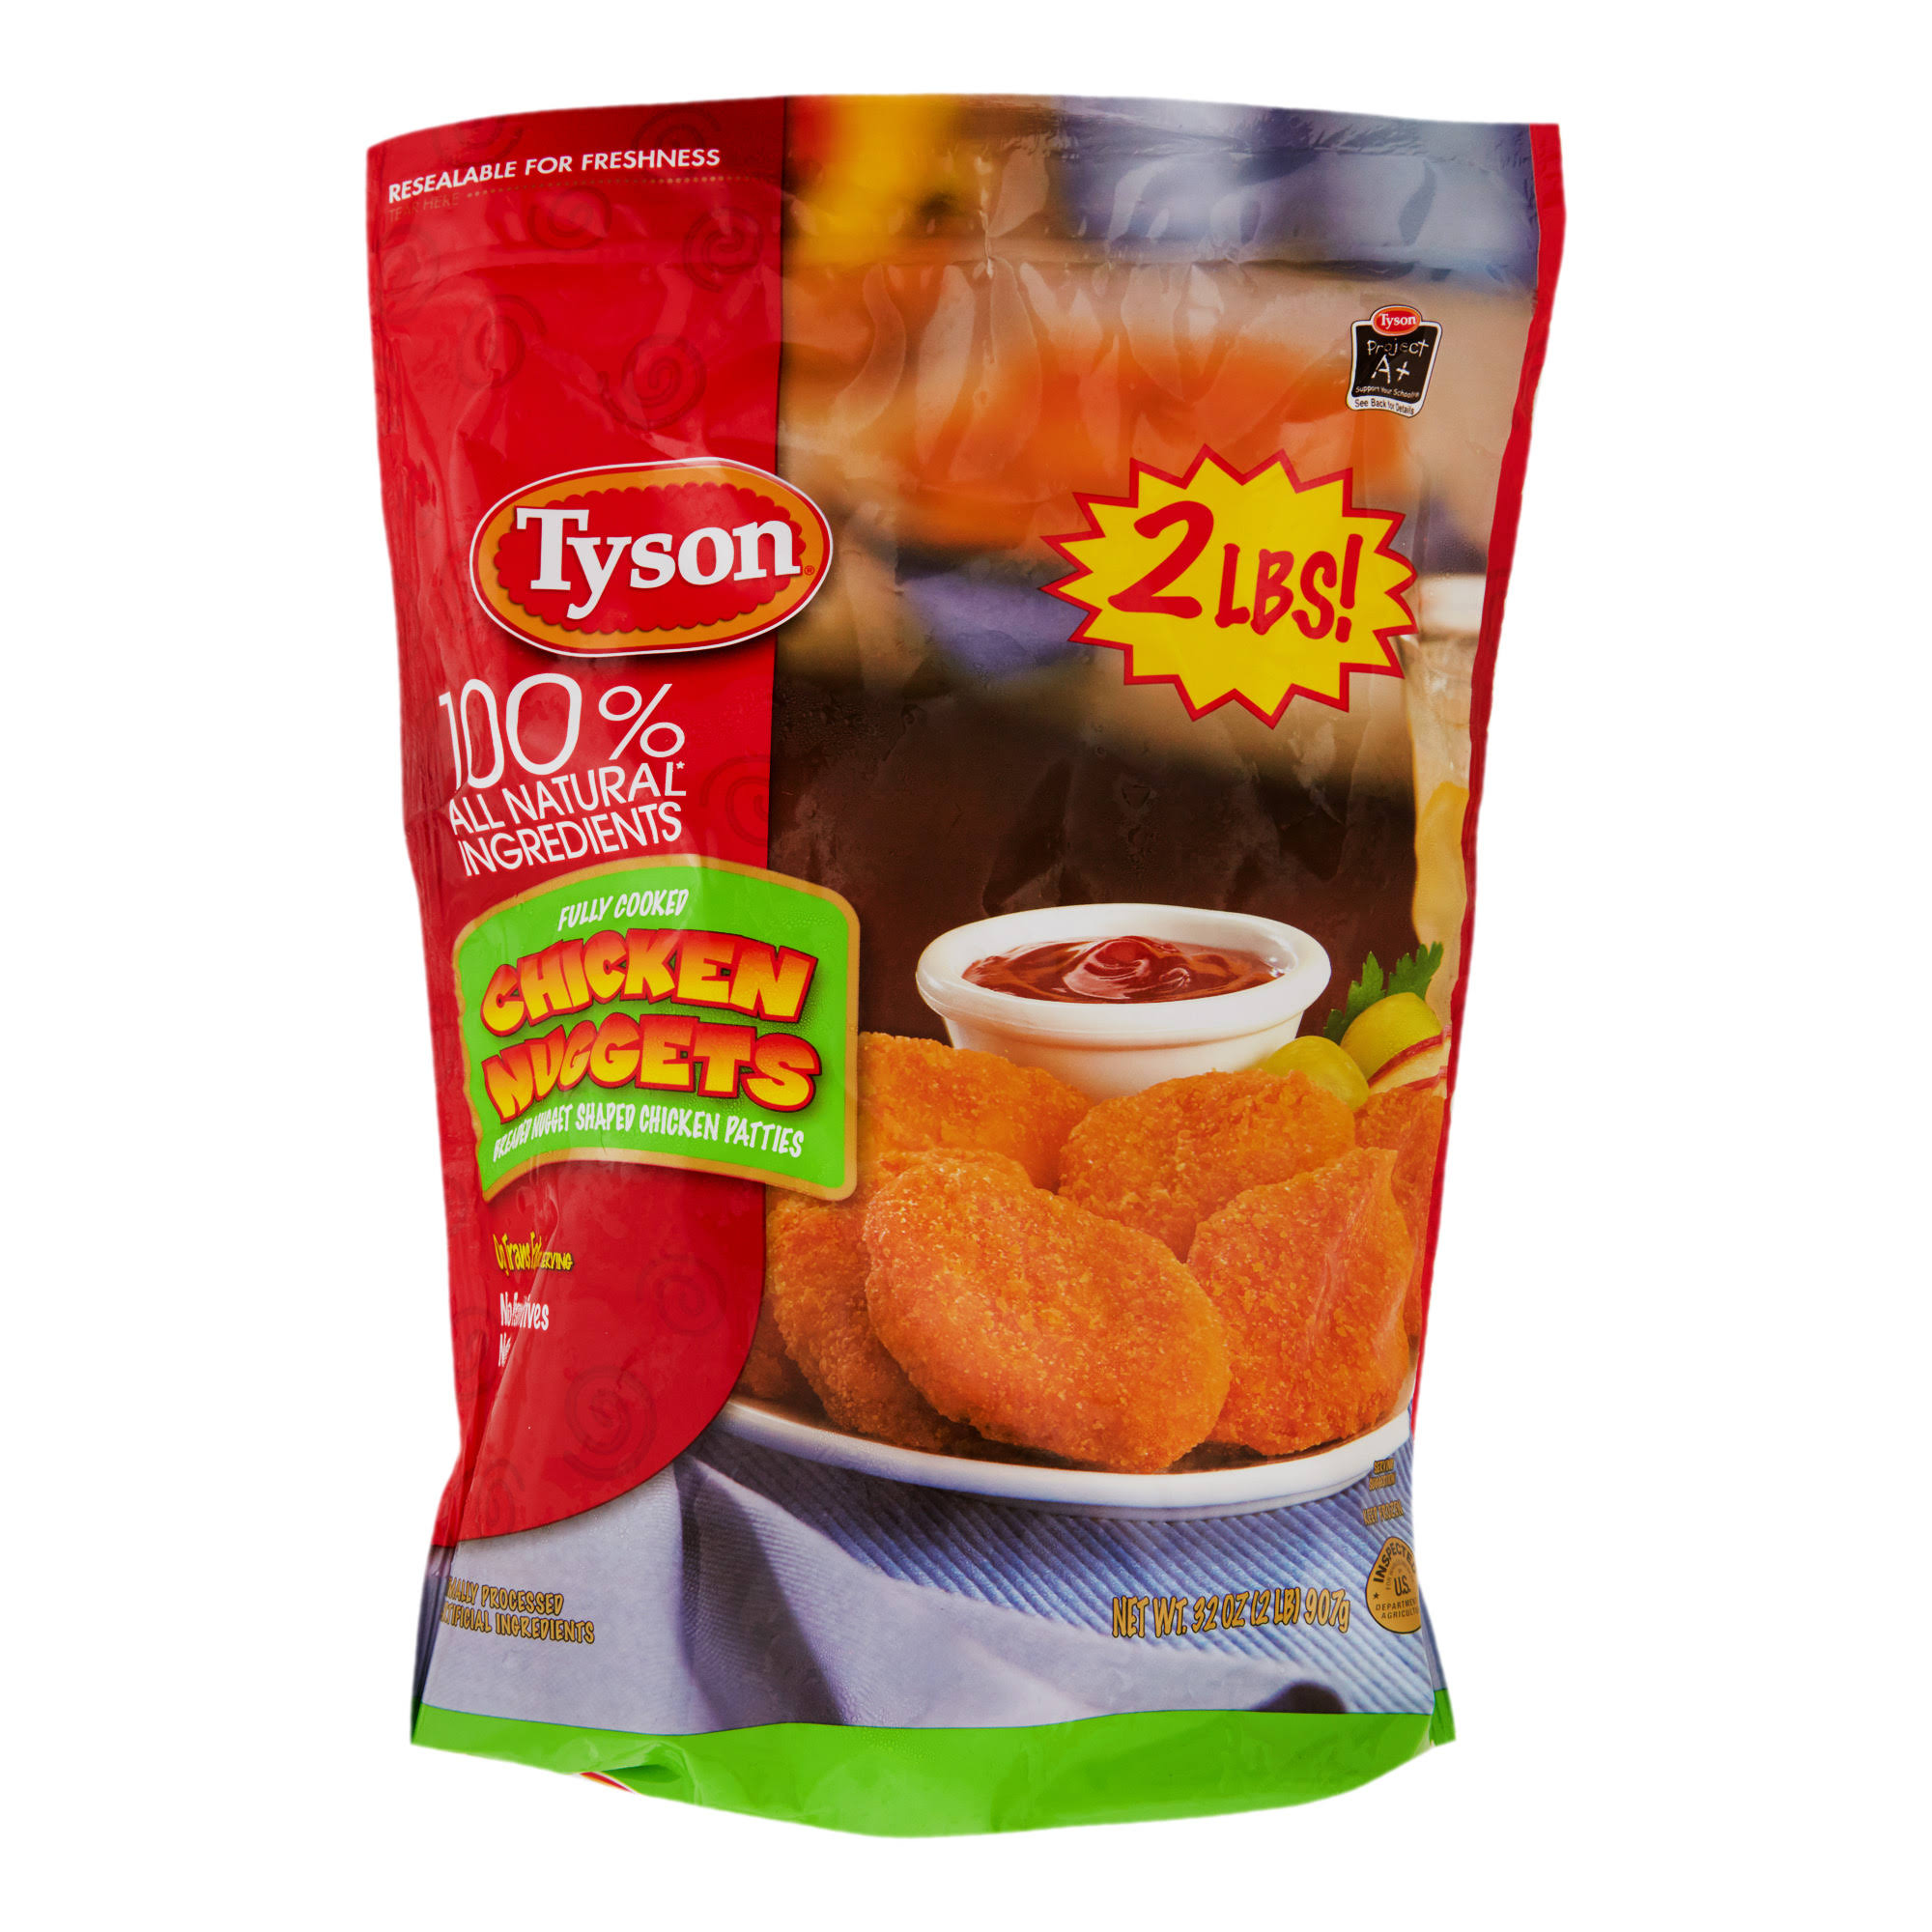 Tyson Chicken Nuggets - 32oz